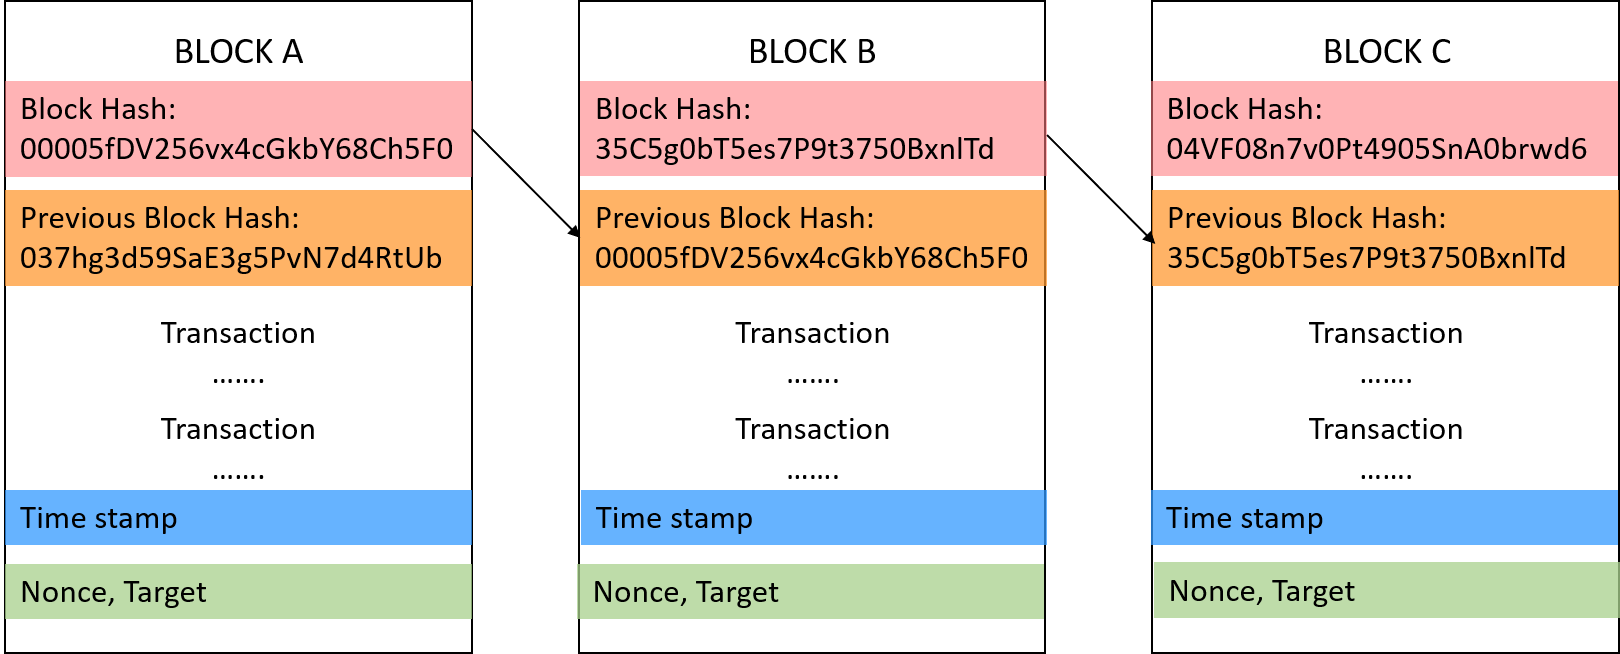 Components of a Block in Blockchain